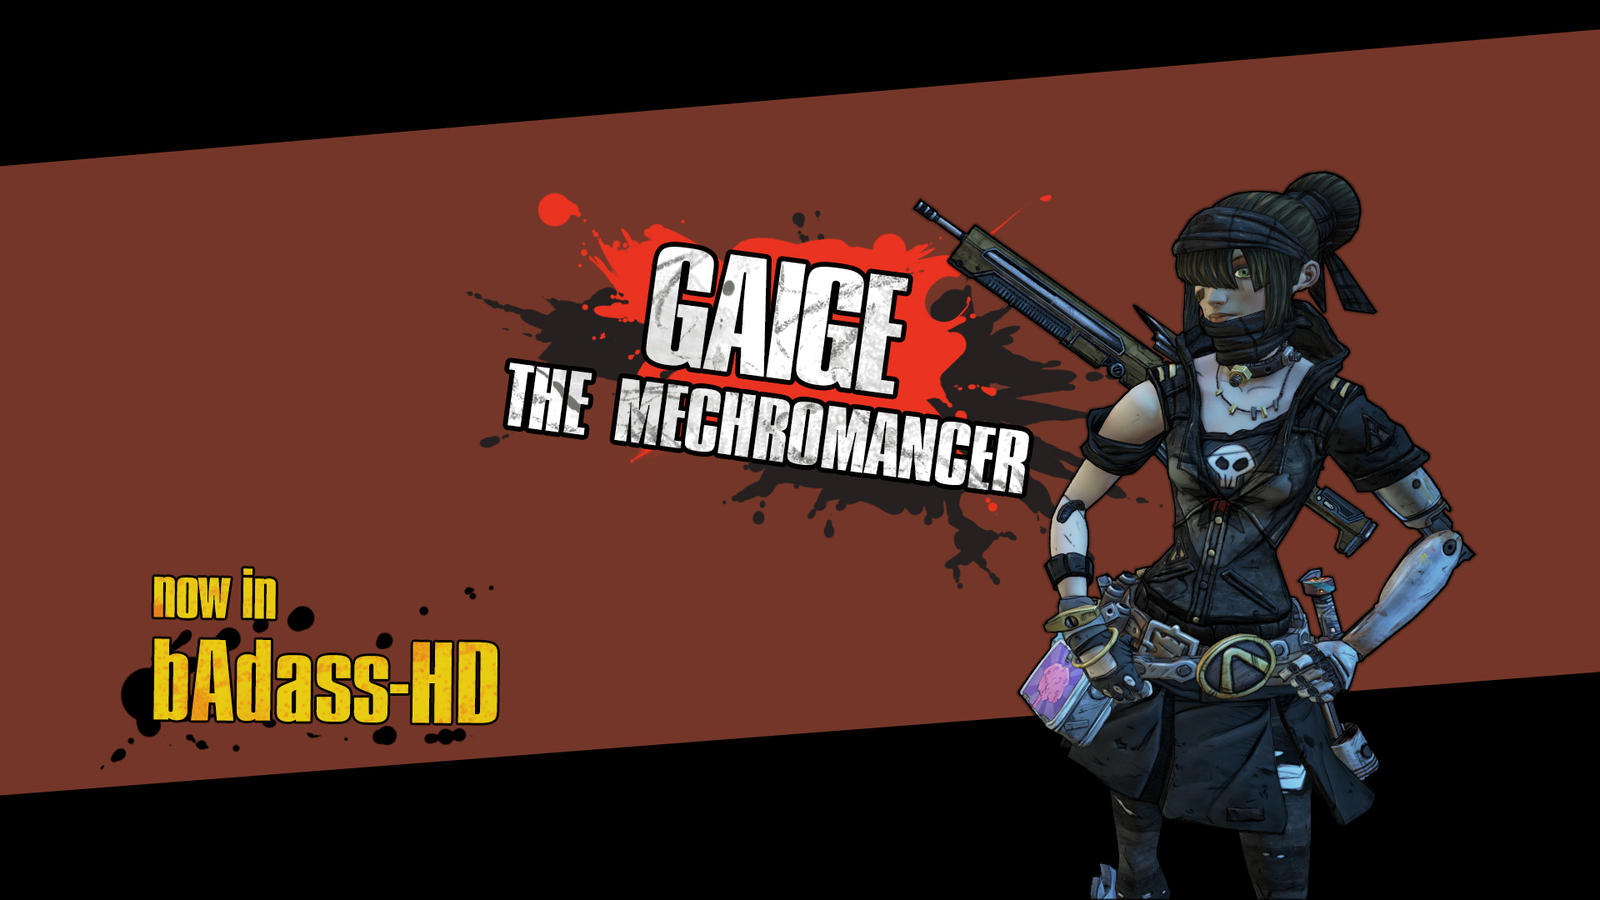 Gaige in hd borderlands 2 by green4gfx on deviantart gaige in hd borderlands 2 by green4gfx voltagebd Image collections